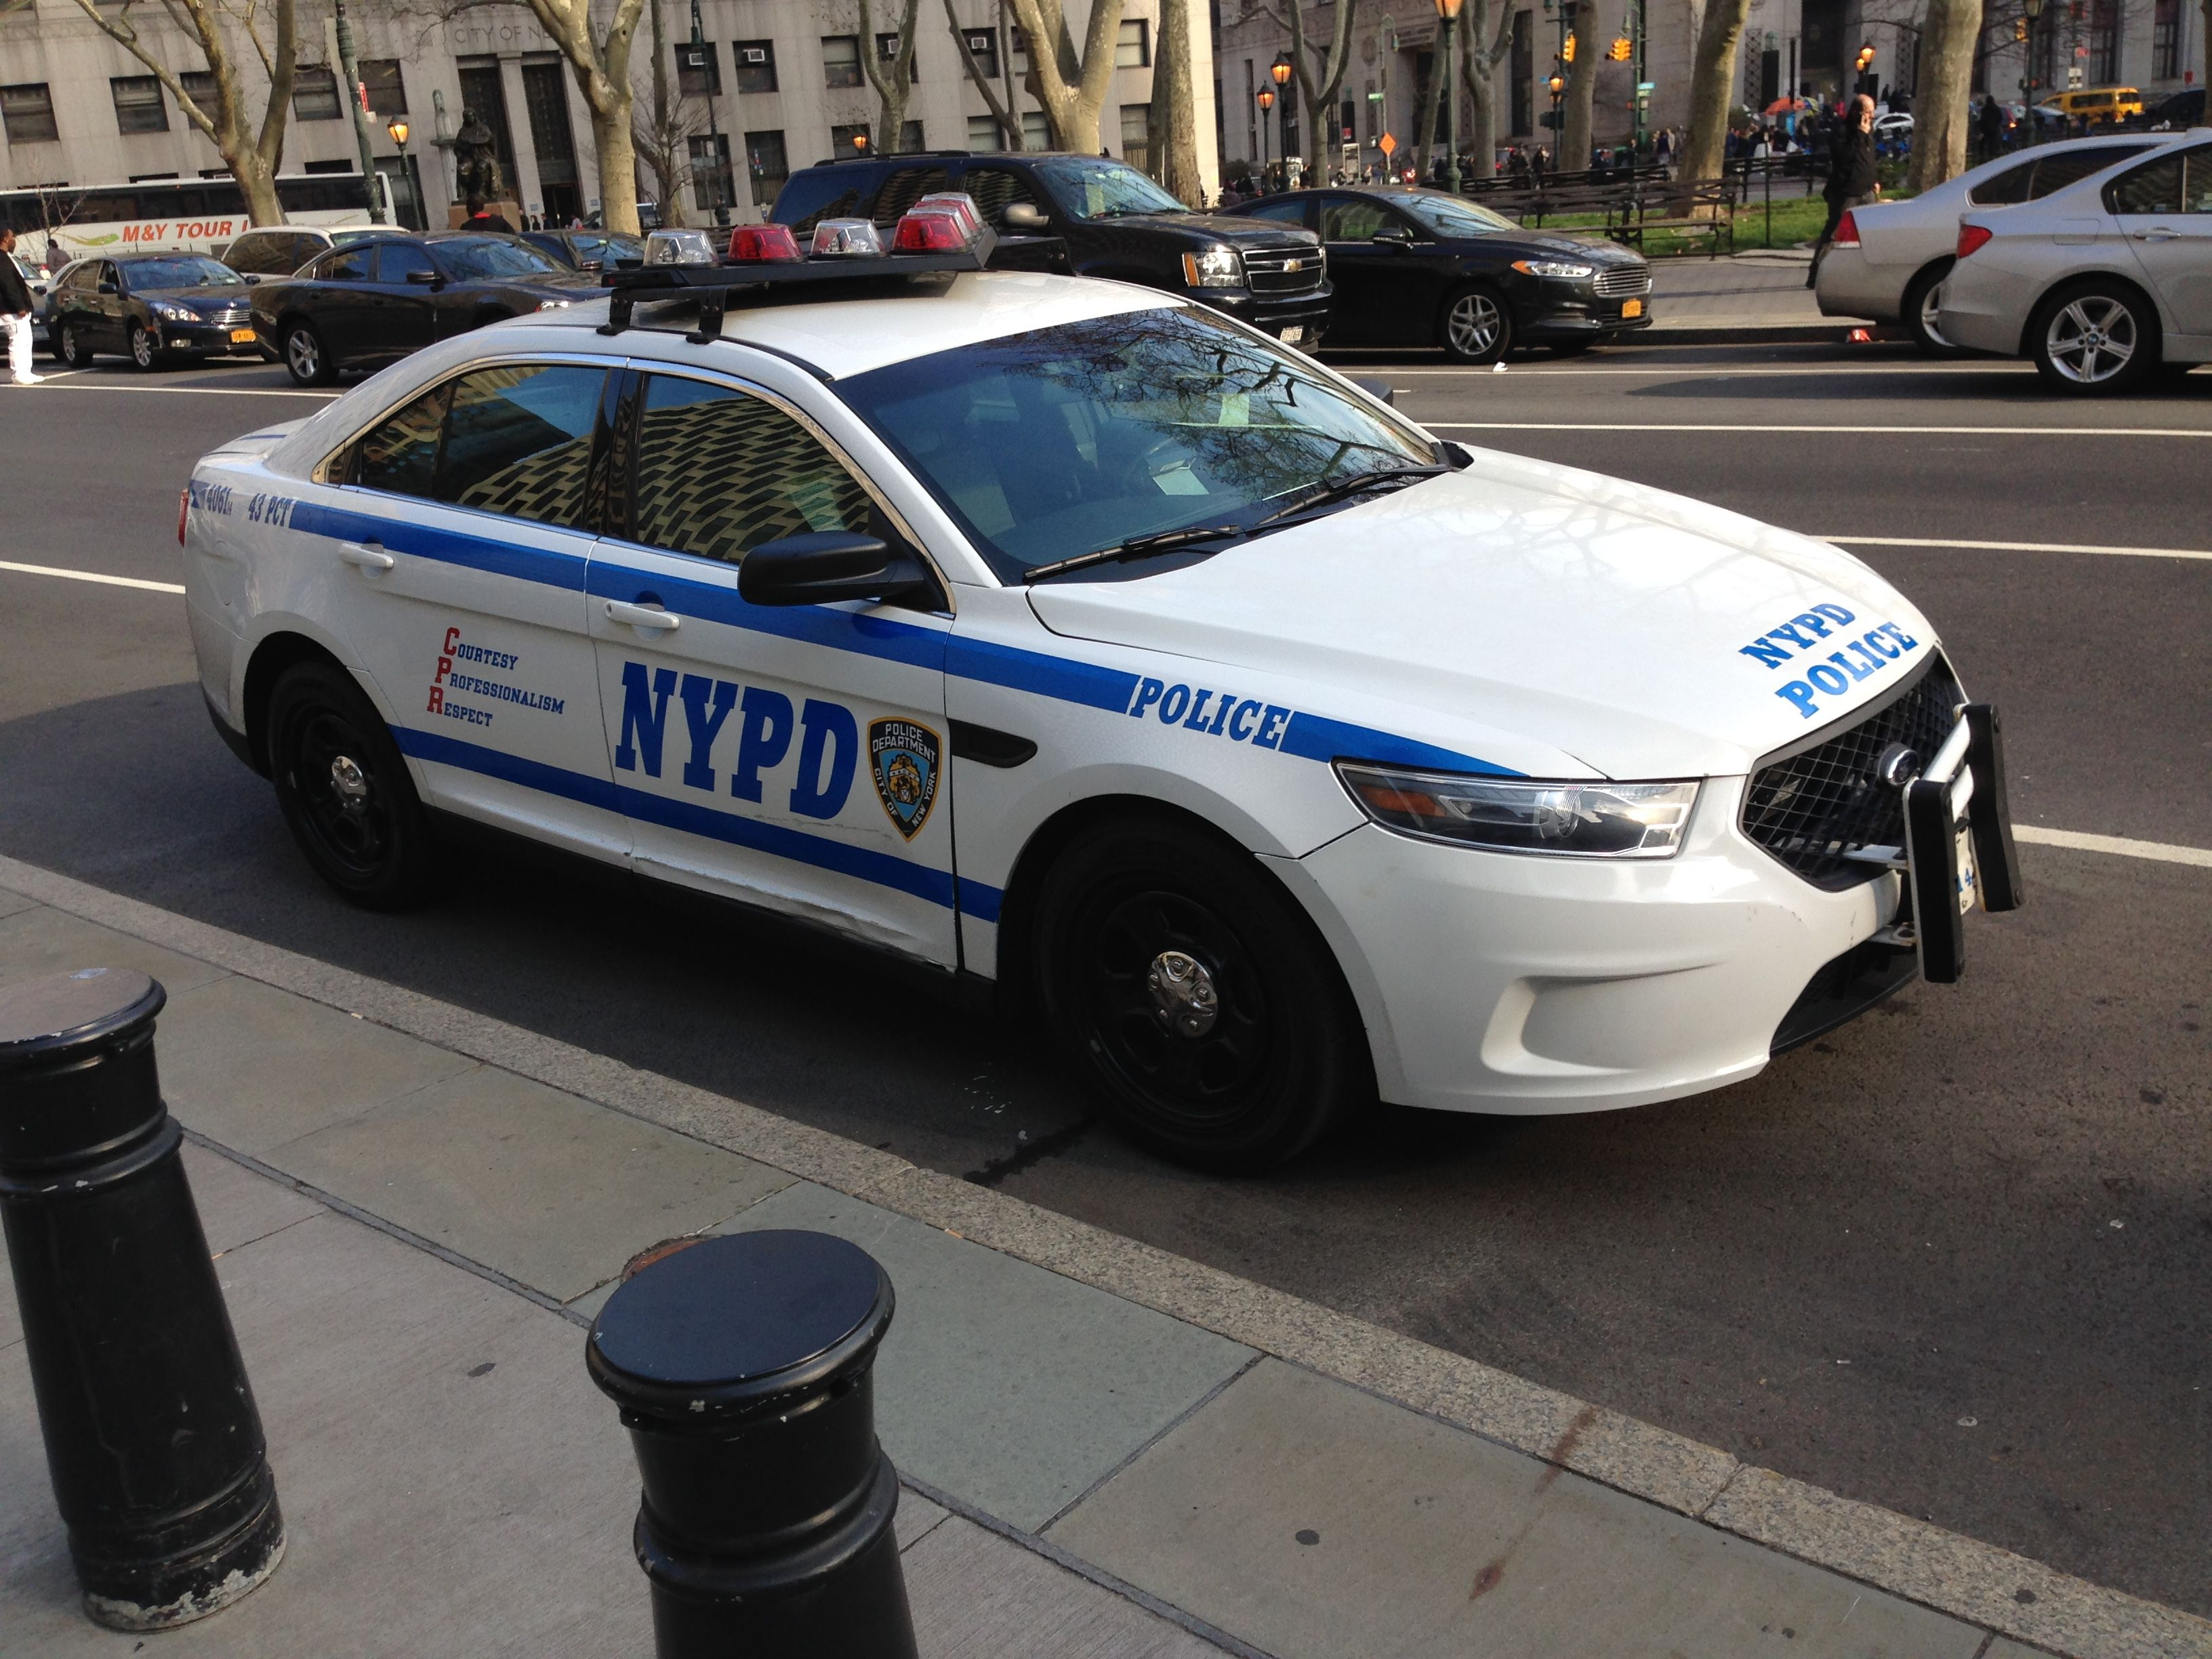 Nypd 43 Pct 4061 Ford Interceptor Ford Police Police Cars Police